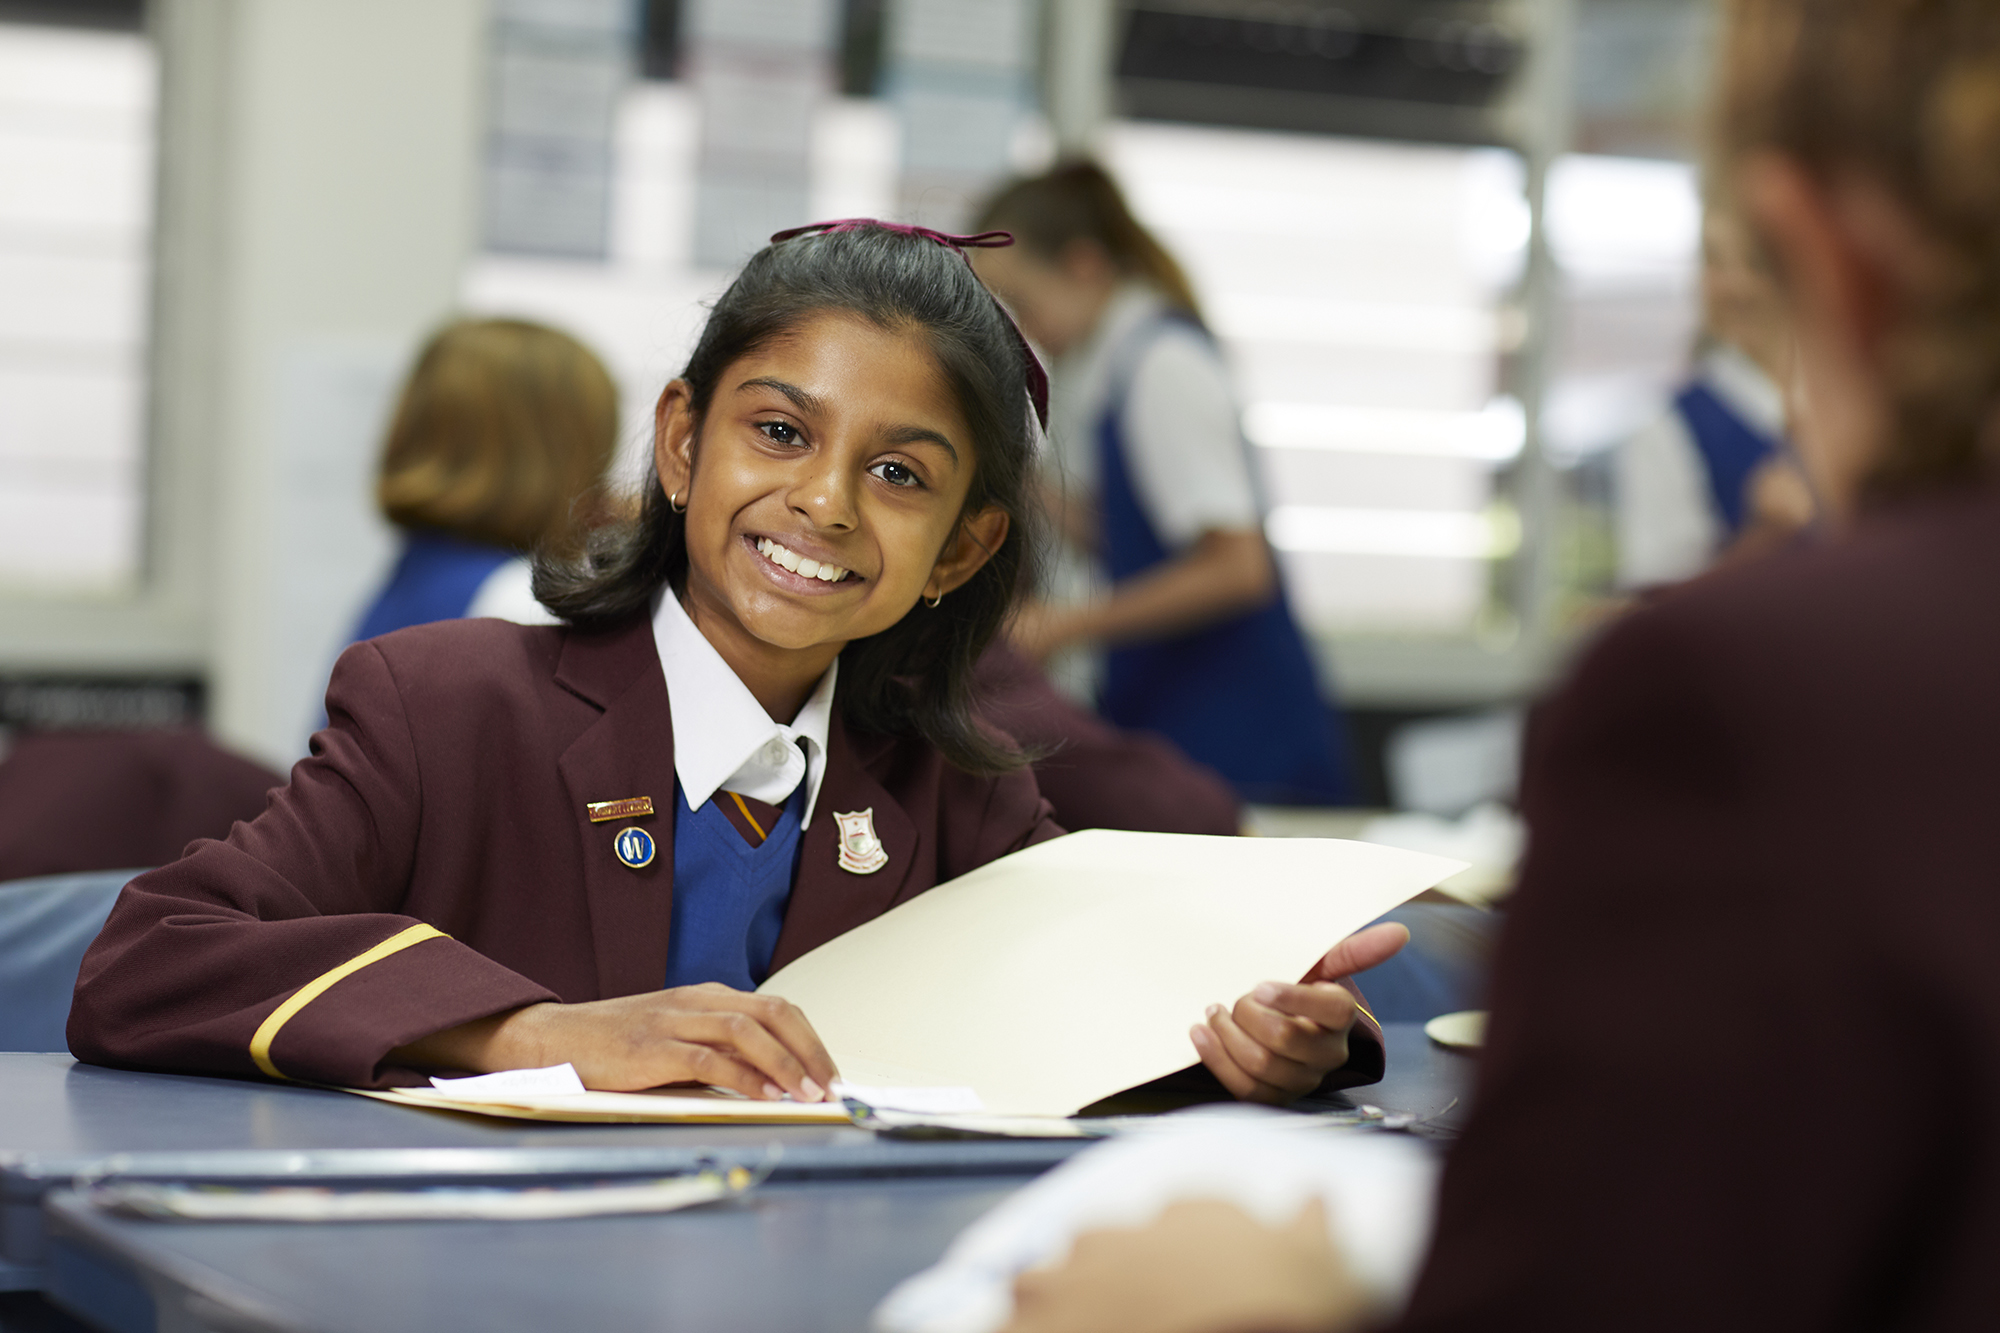 The International Baccalaureate (IB) Primary Years Programme